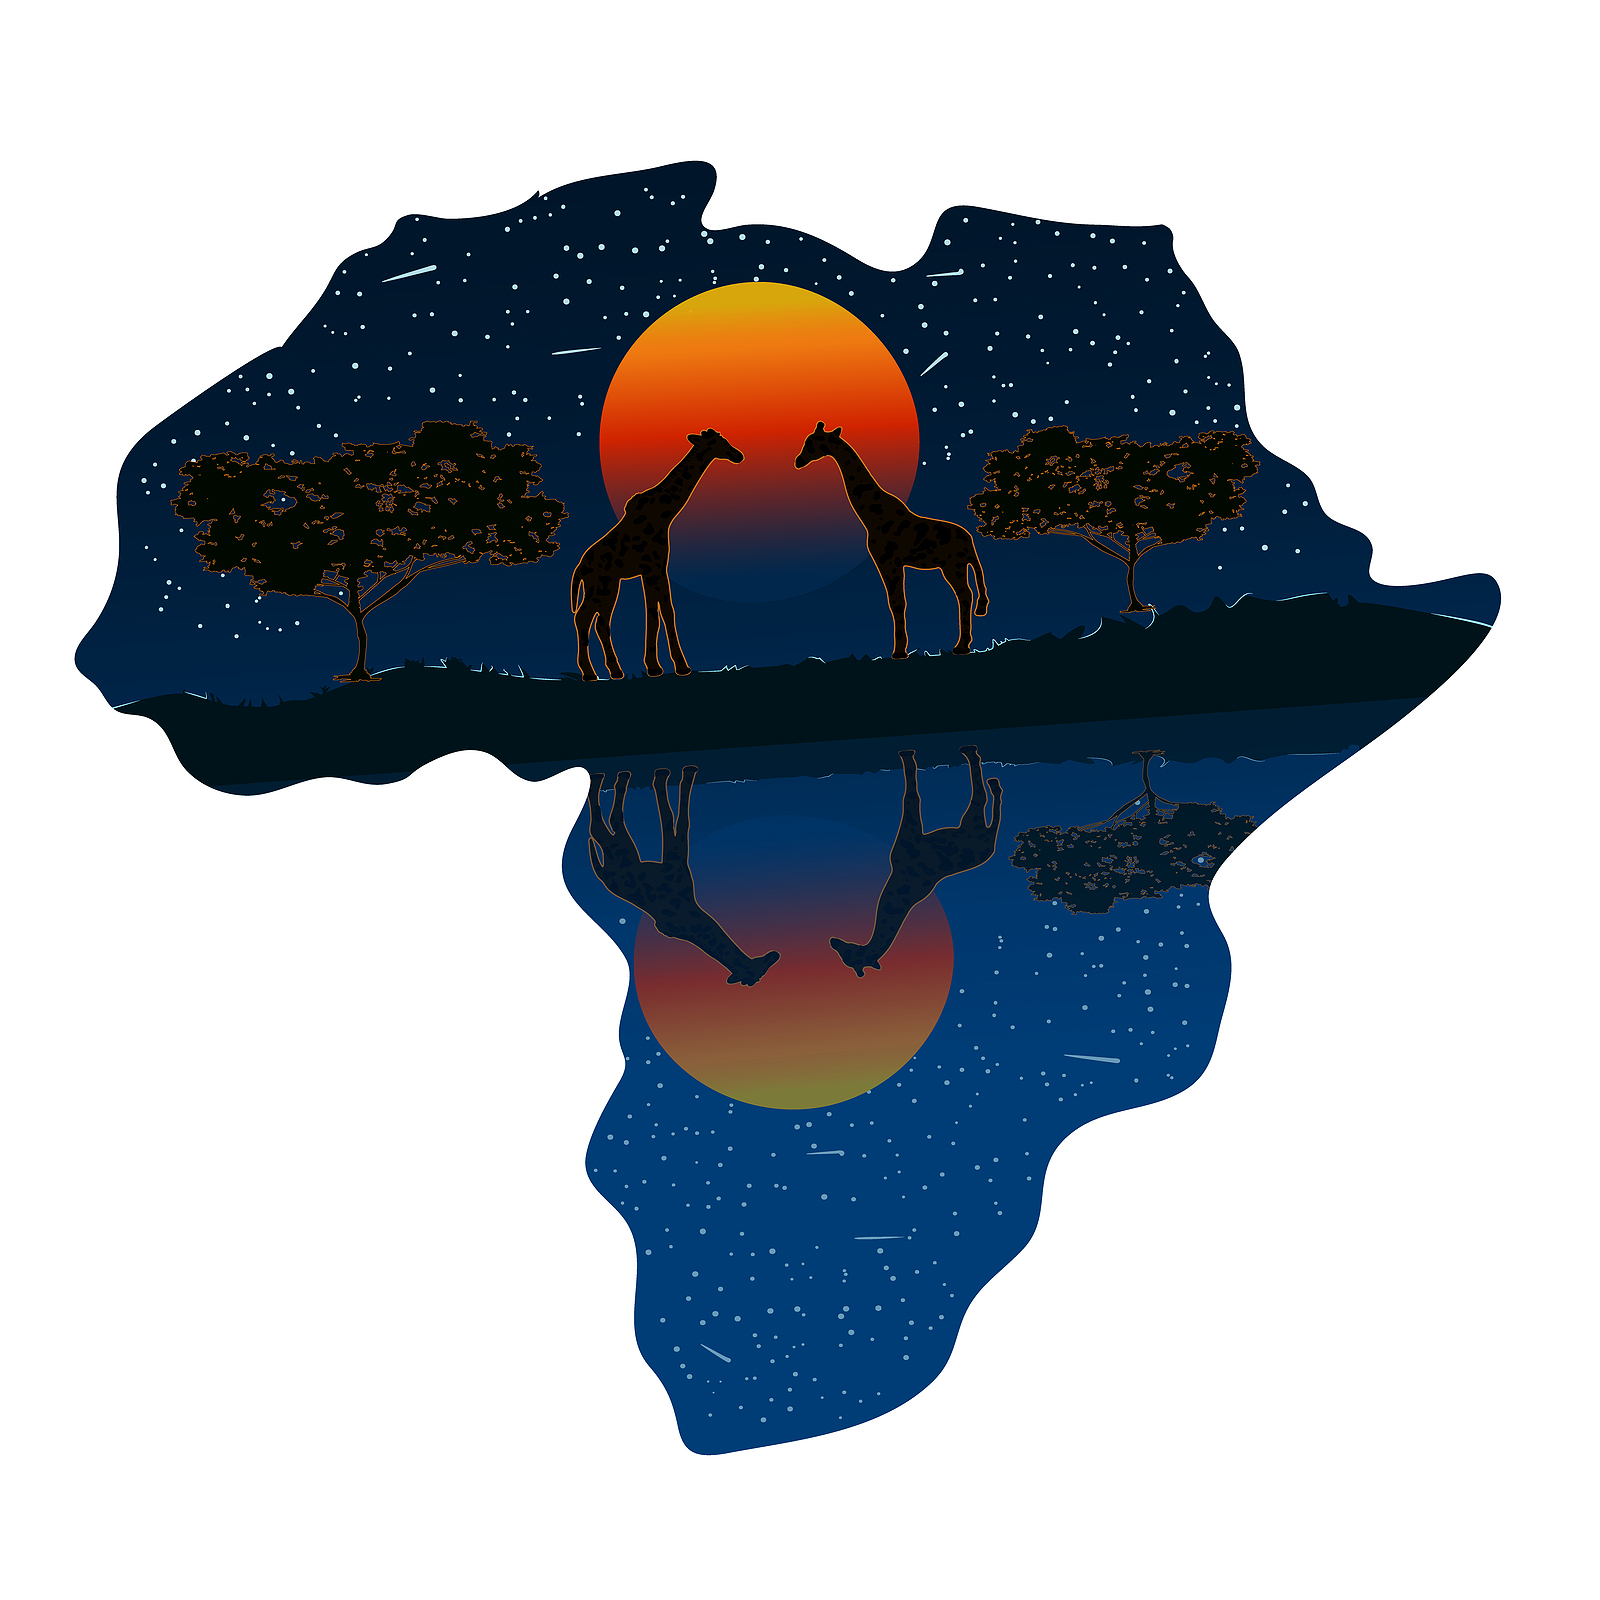 Investing in Africa: a New Land of Opportunity